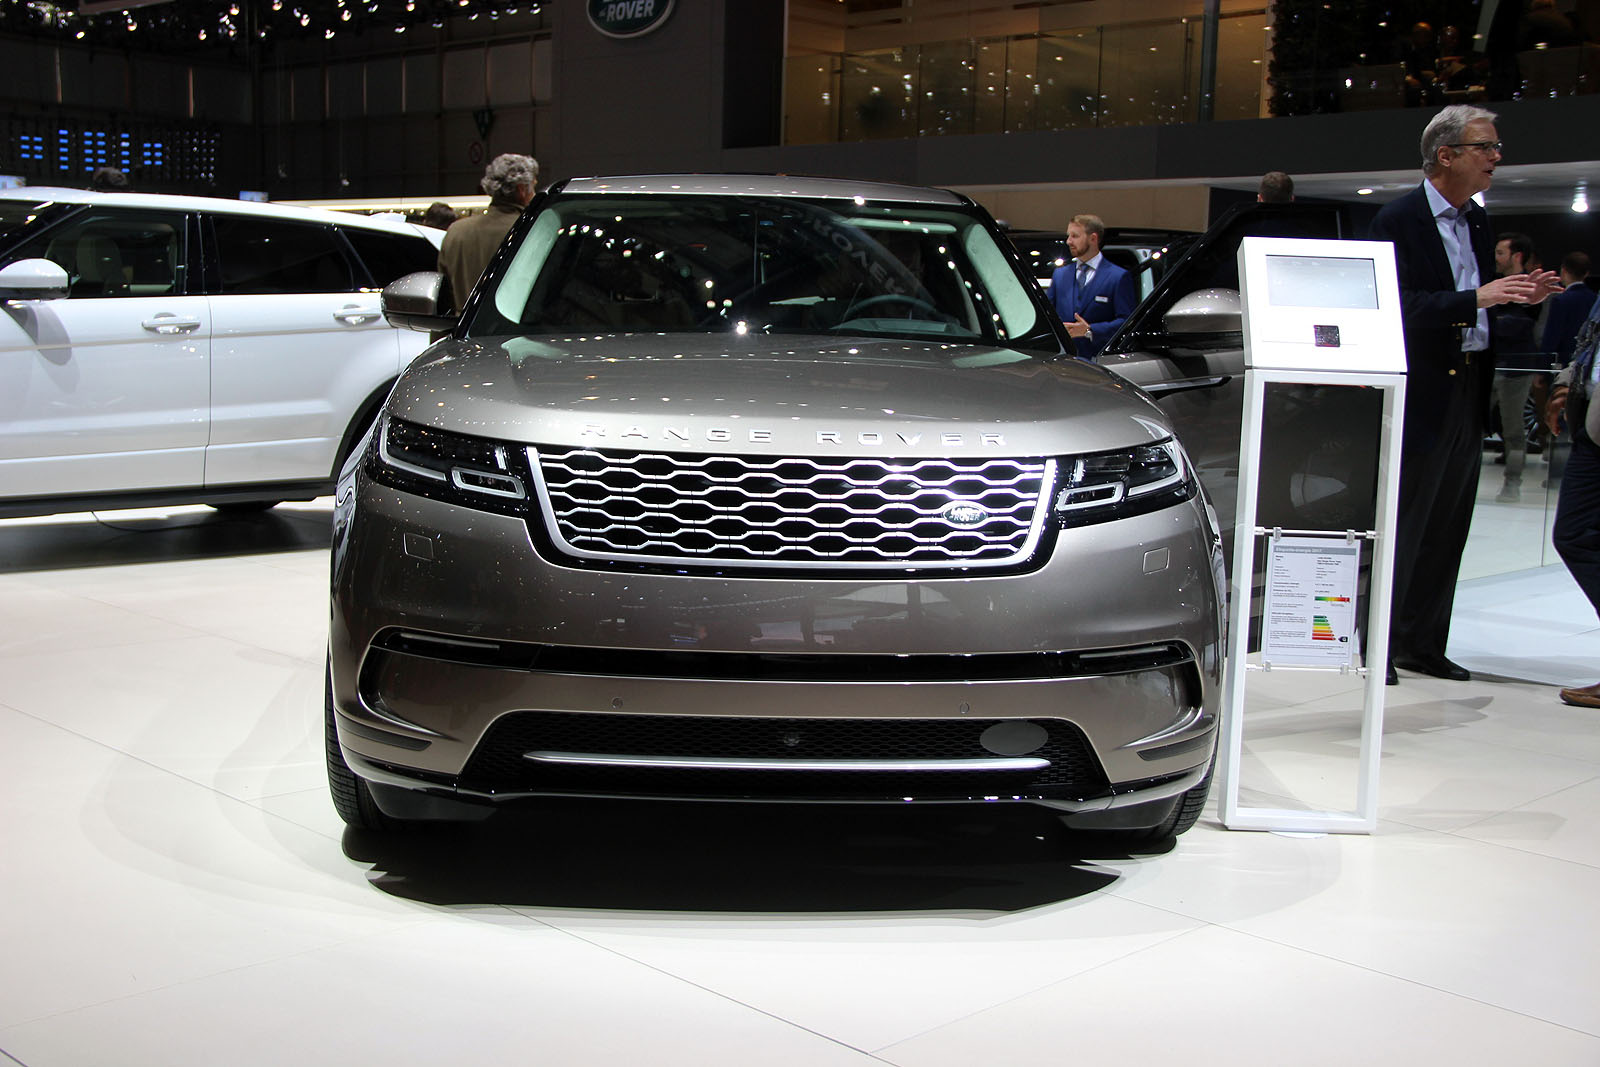 2018 land rover cost.  cost 2018 range rover velar05 to land rover cost